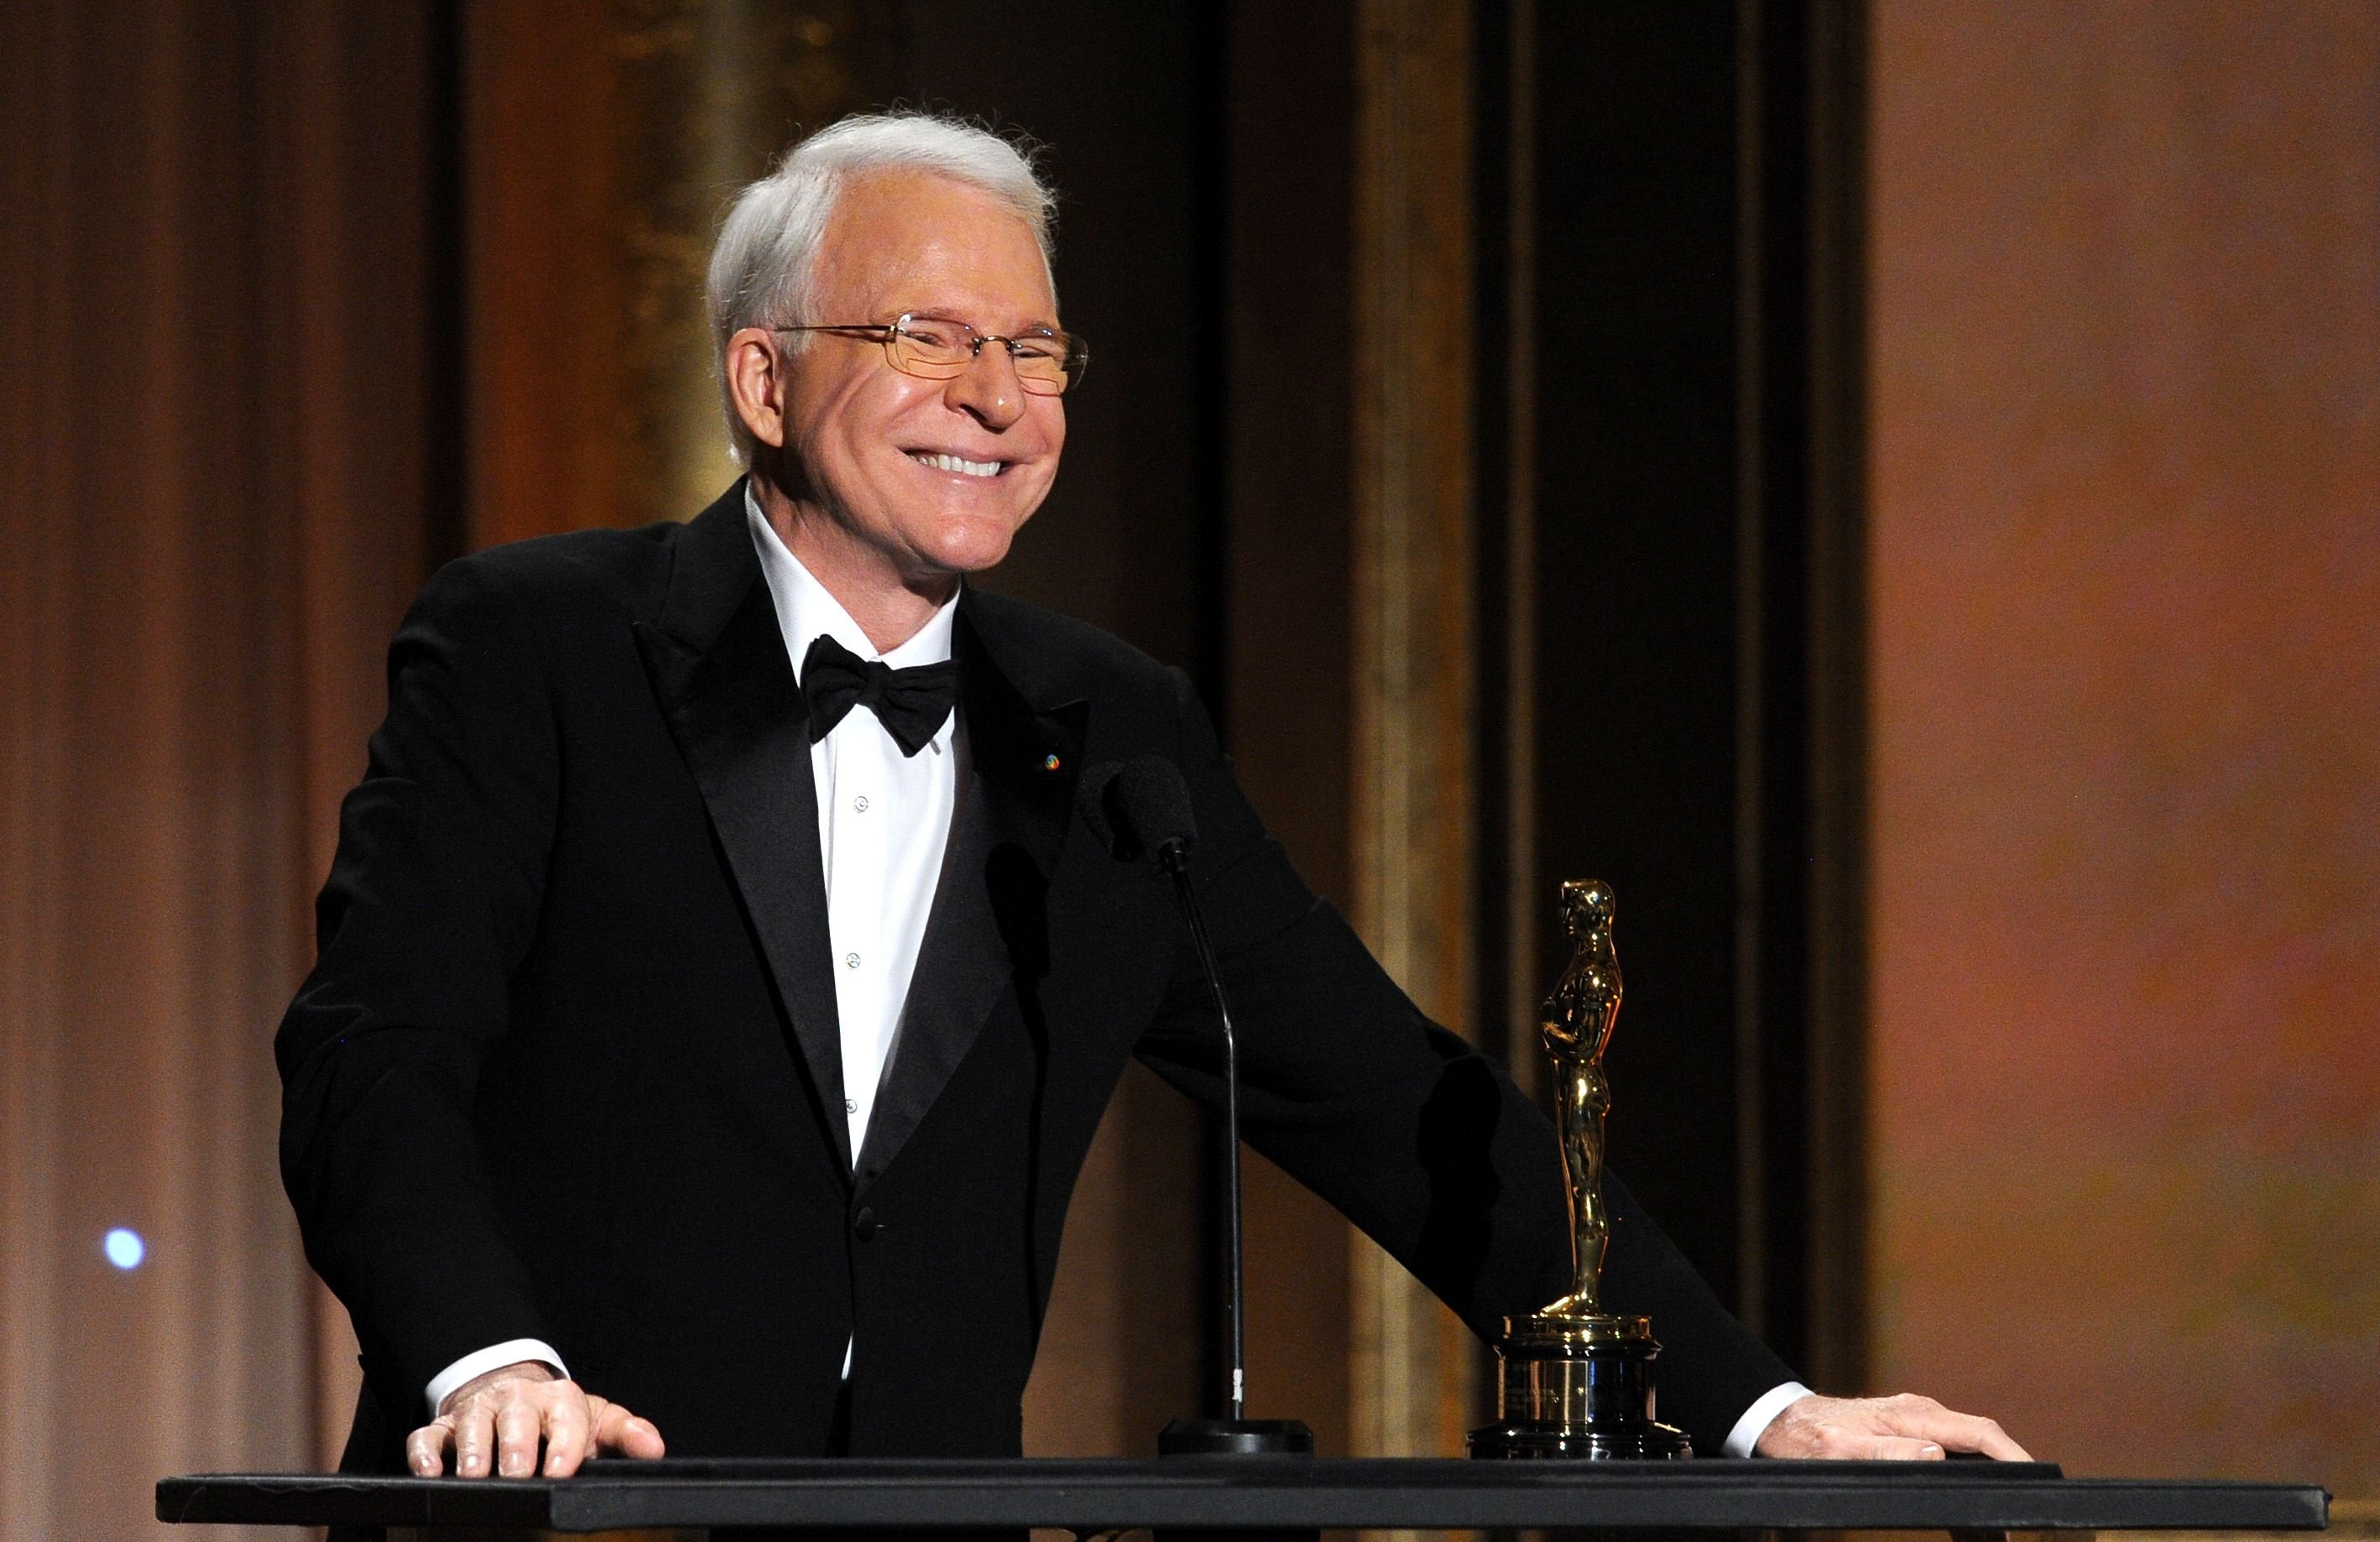 Steve Martin accepts honorary award onstage during the Academy of Motion Picture Arts and Sciences' Governors Awards. | Source: Getty Images